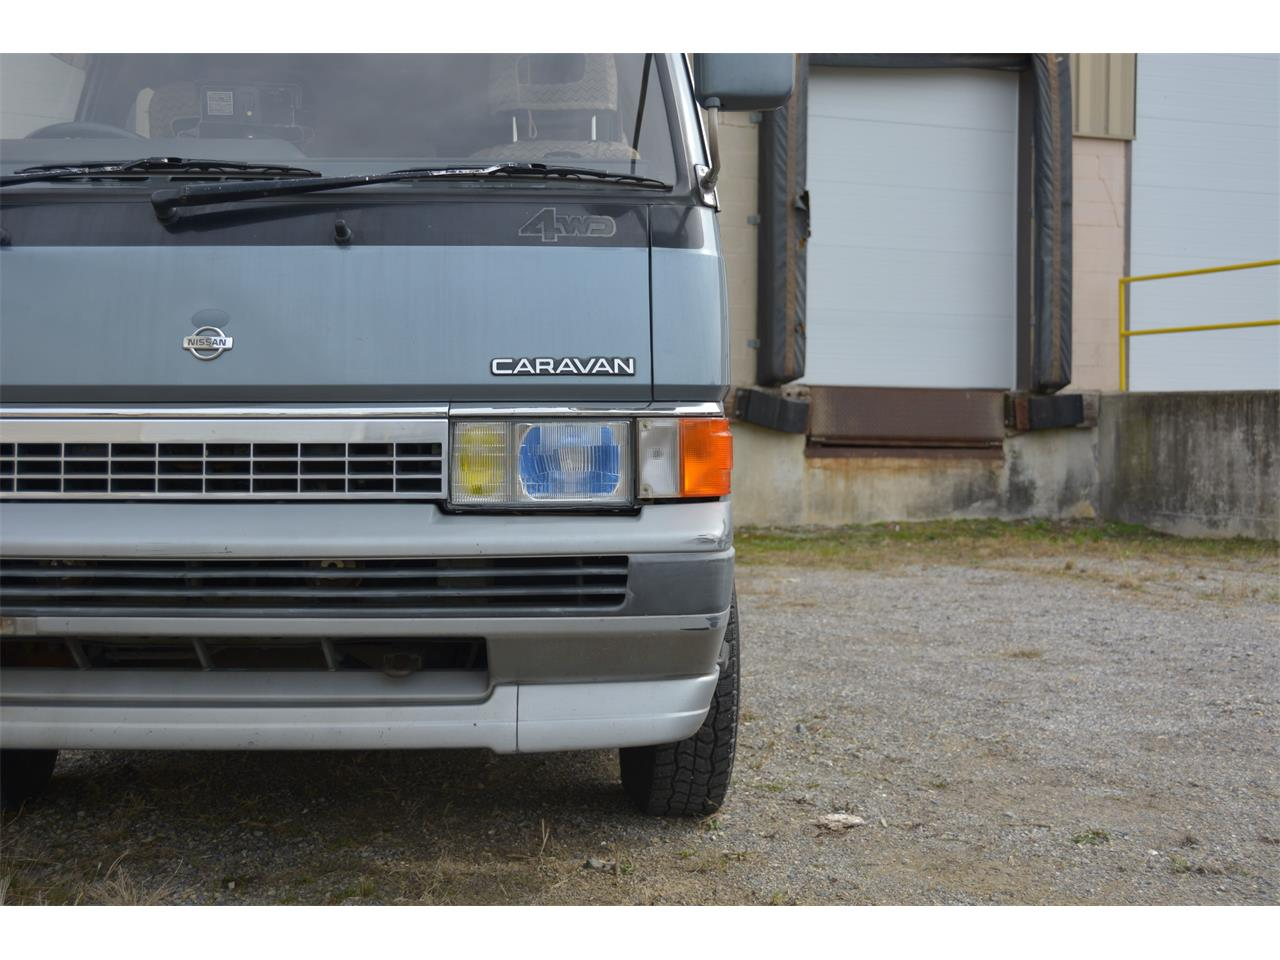 Large Picture of 1990 Nissan Caravan located in Christiansburg Virginia - $17,900.00 - LN58